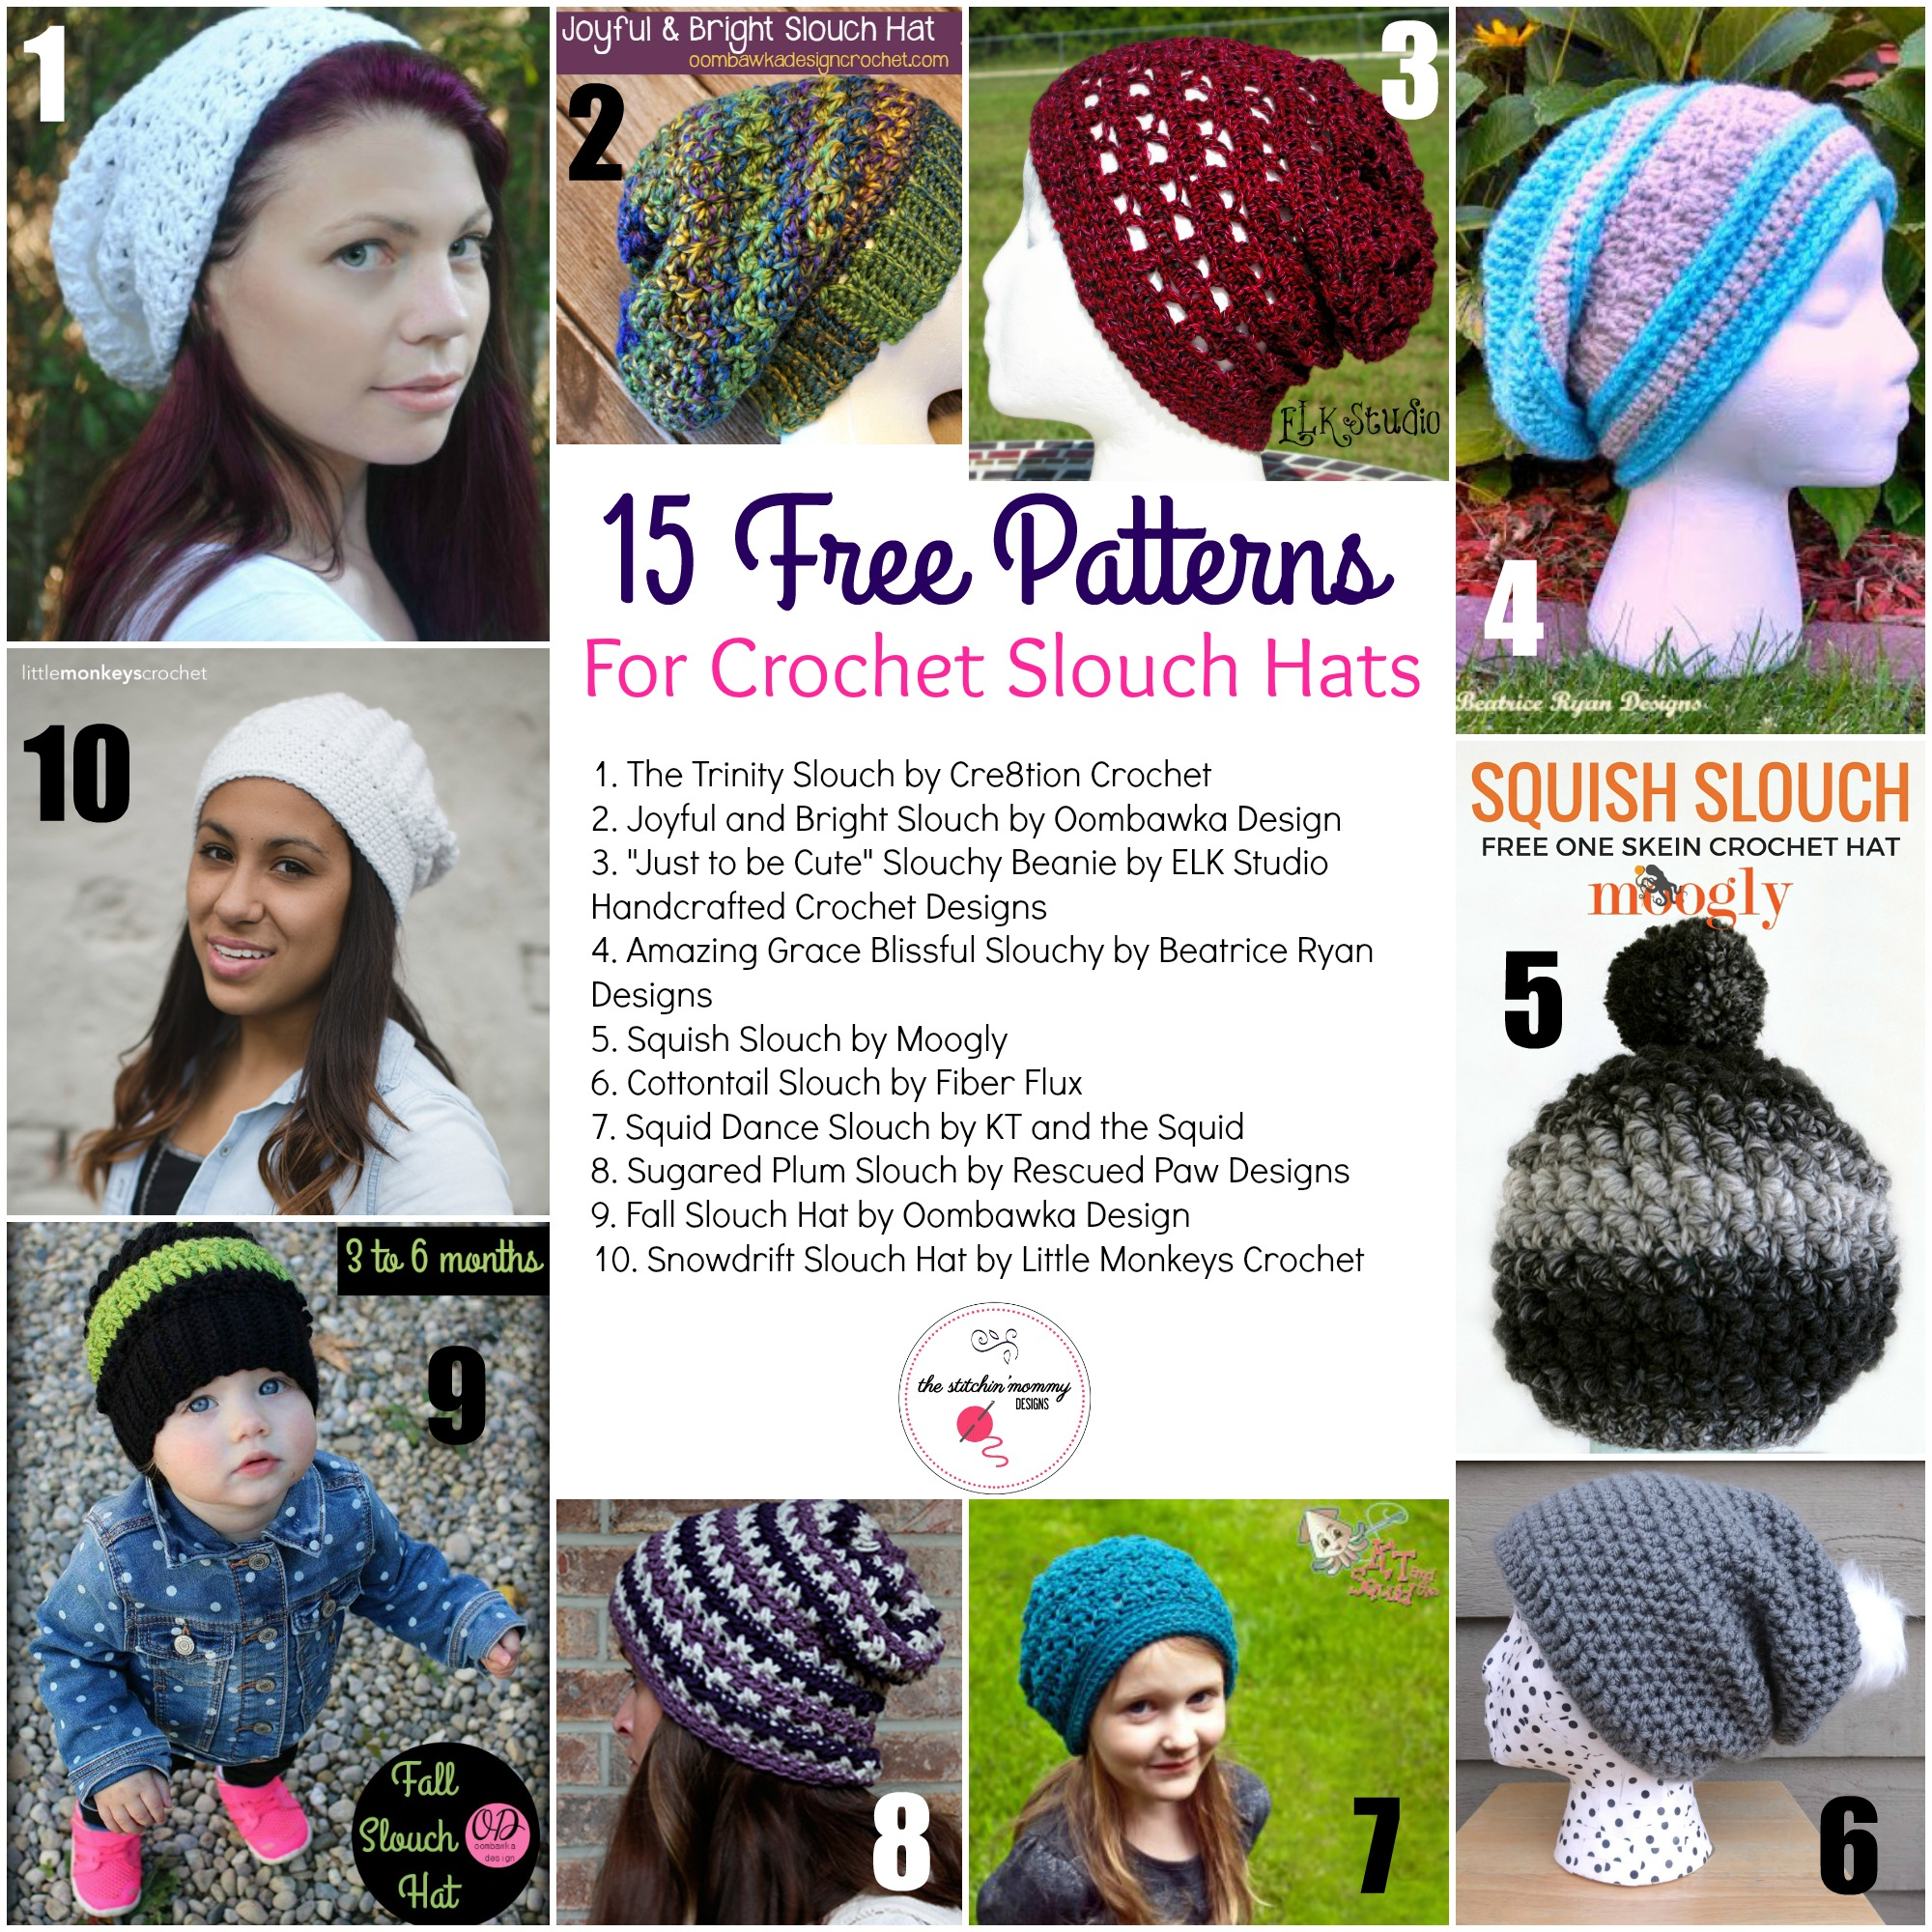 110adb06678 15 Free Patterns for Crochet Slouch Hats - The Stitchin Mommy